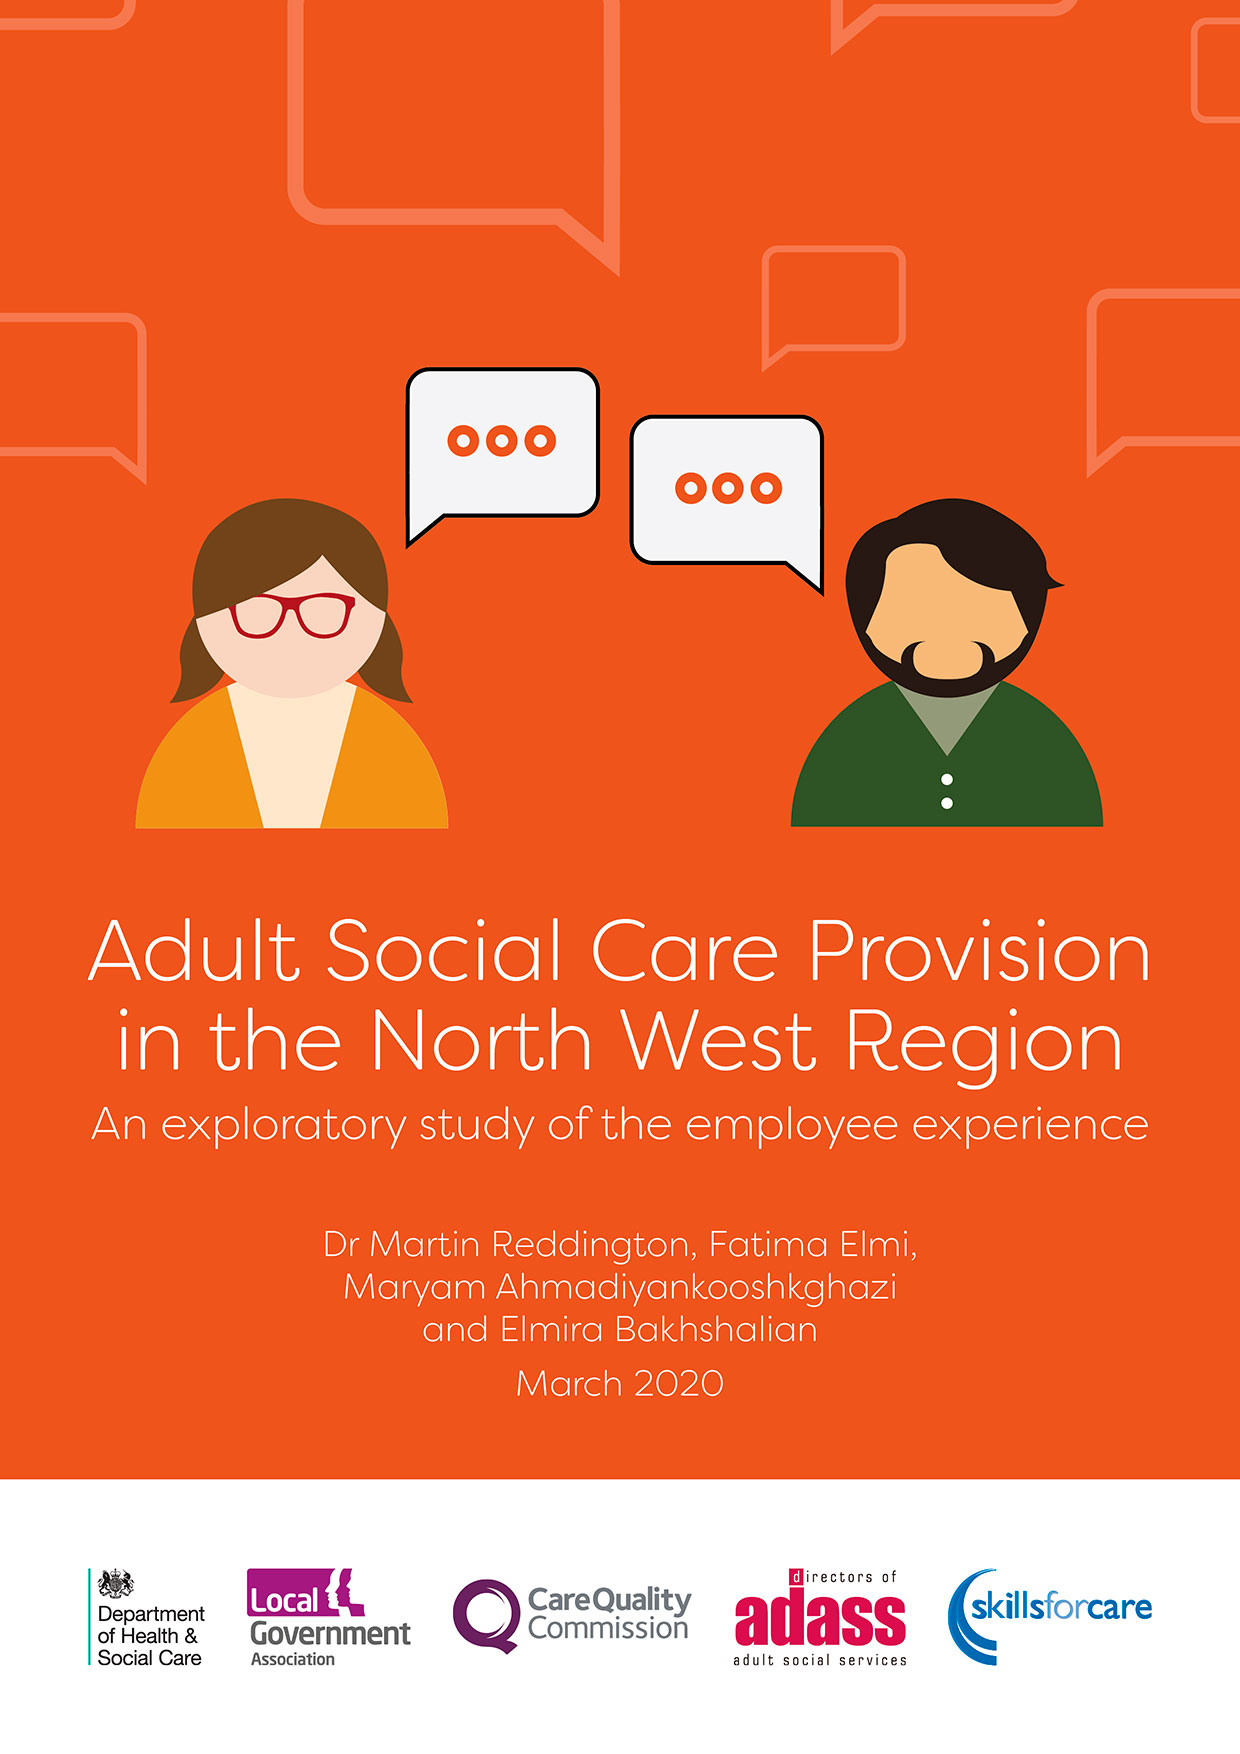 Adult Social Care Provision in the North West Region